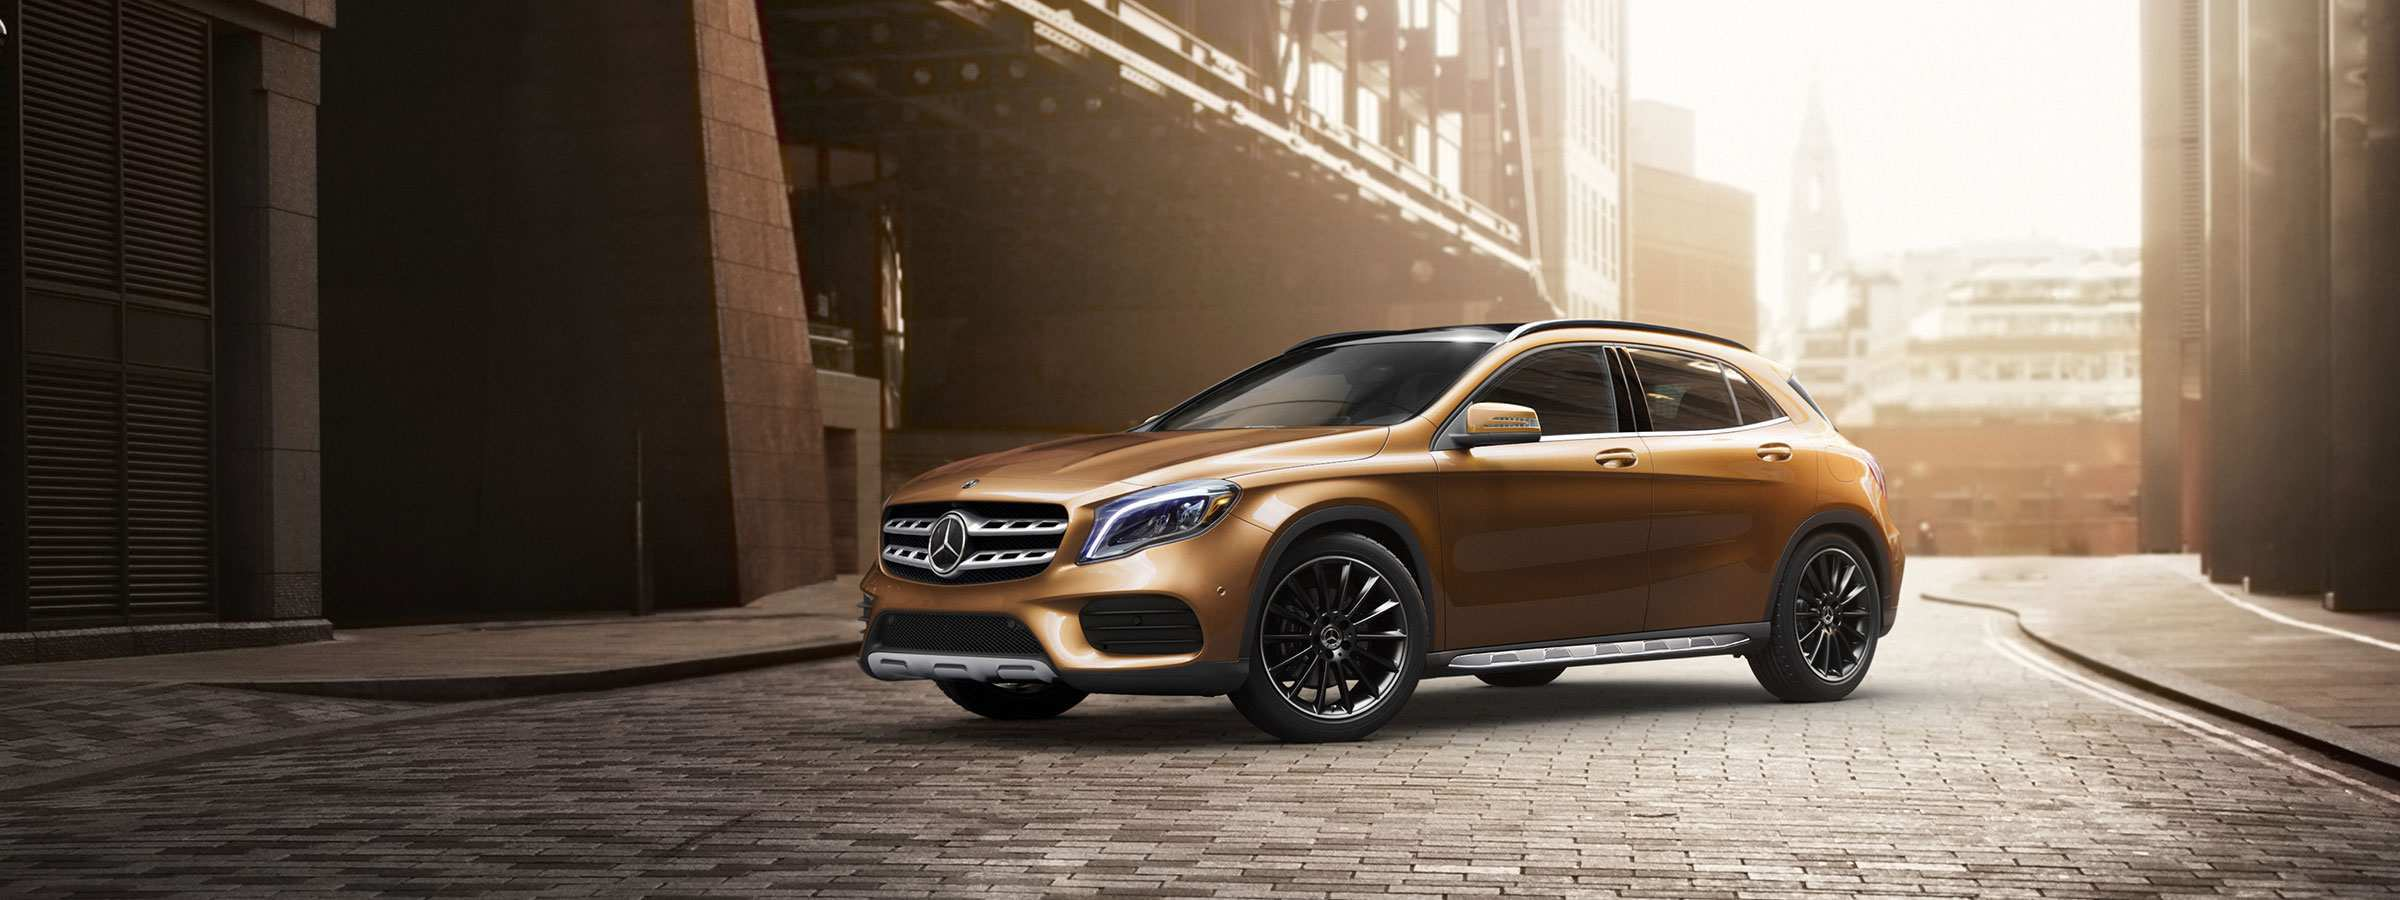 38 The Best Mercedes Gla 2019 Concept